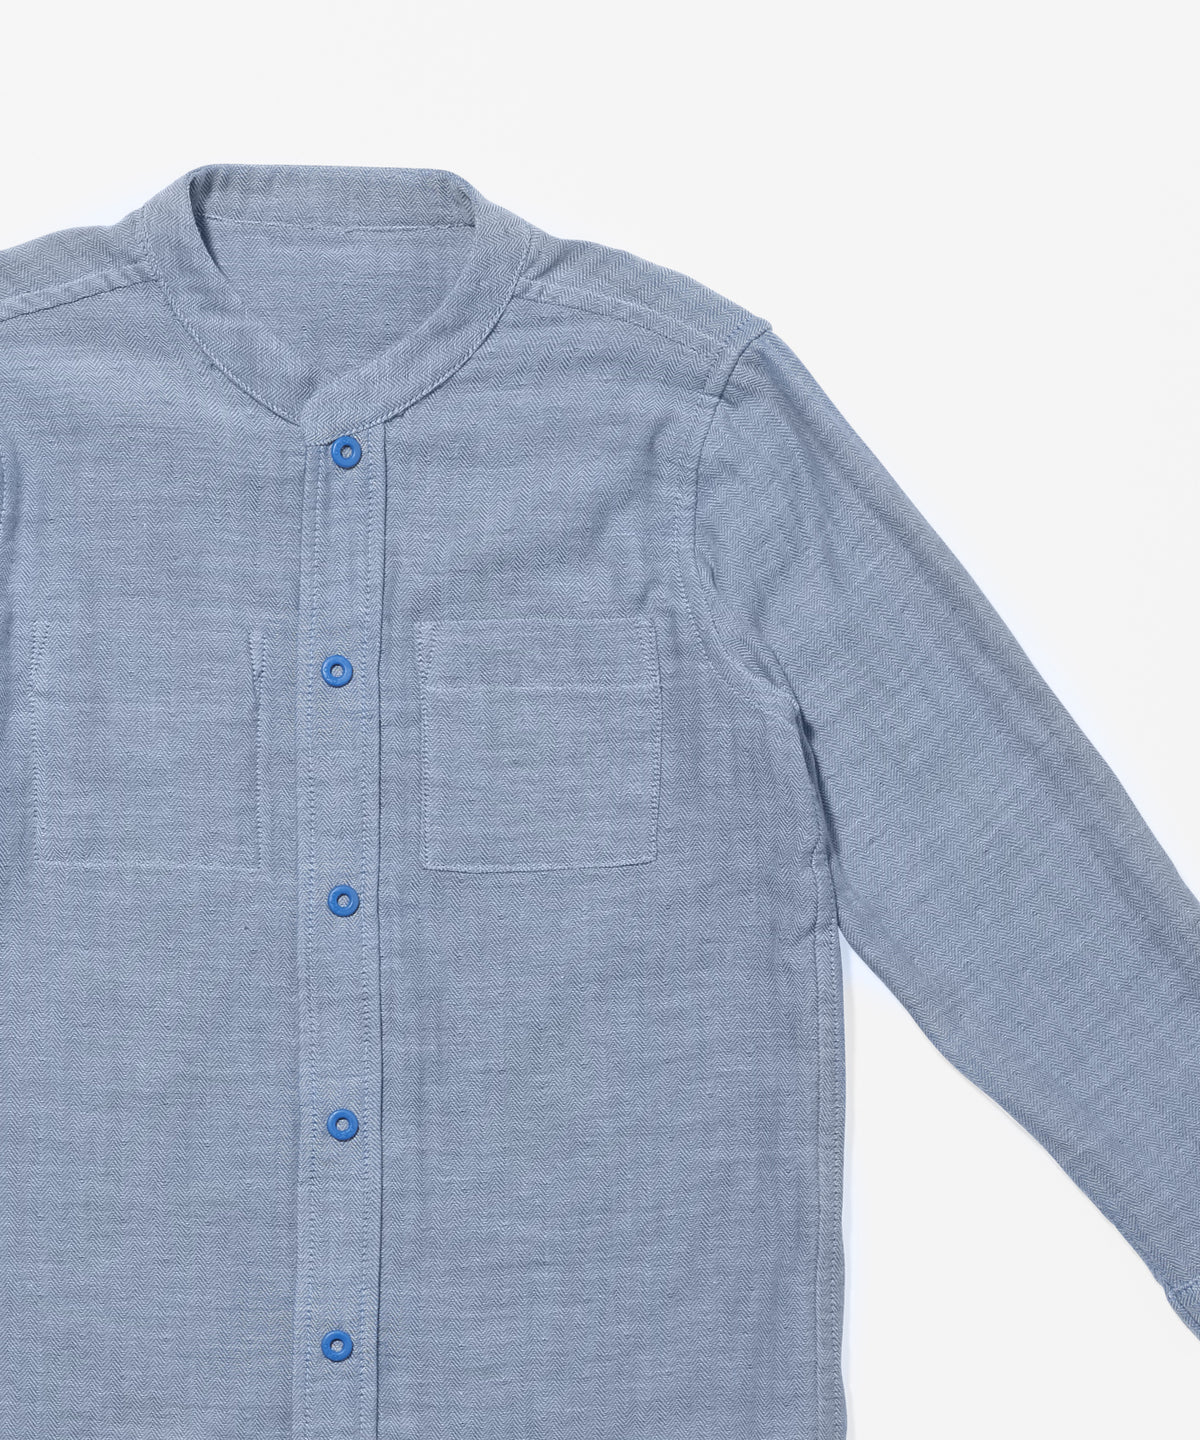 Jack Lee Shirt, Blue Herringbone